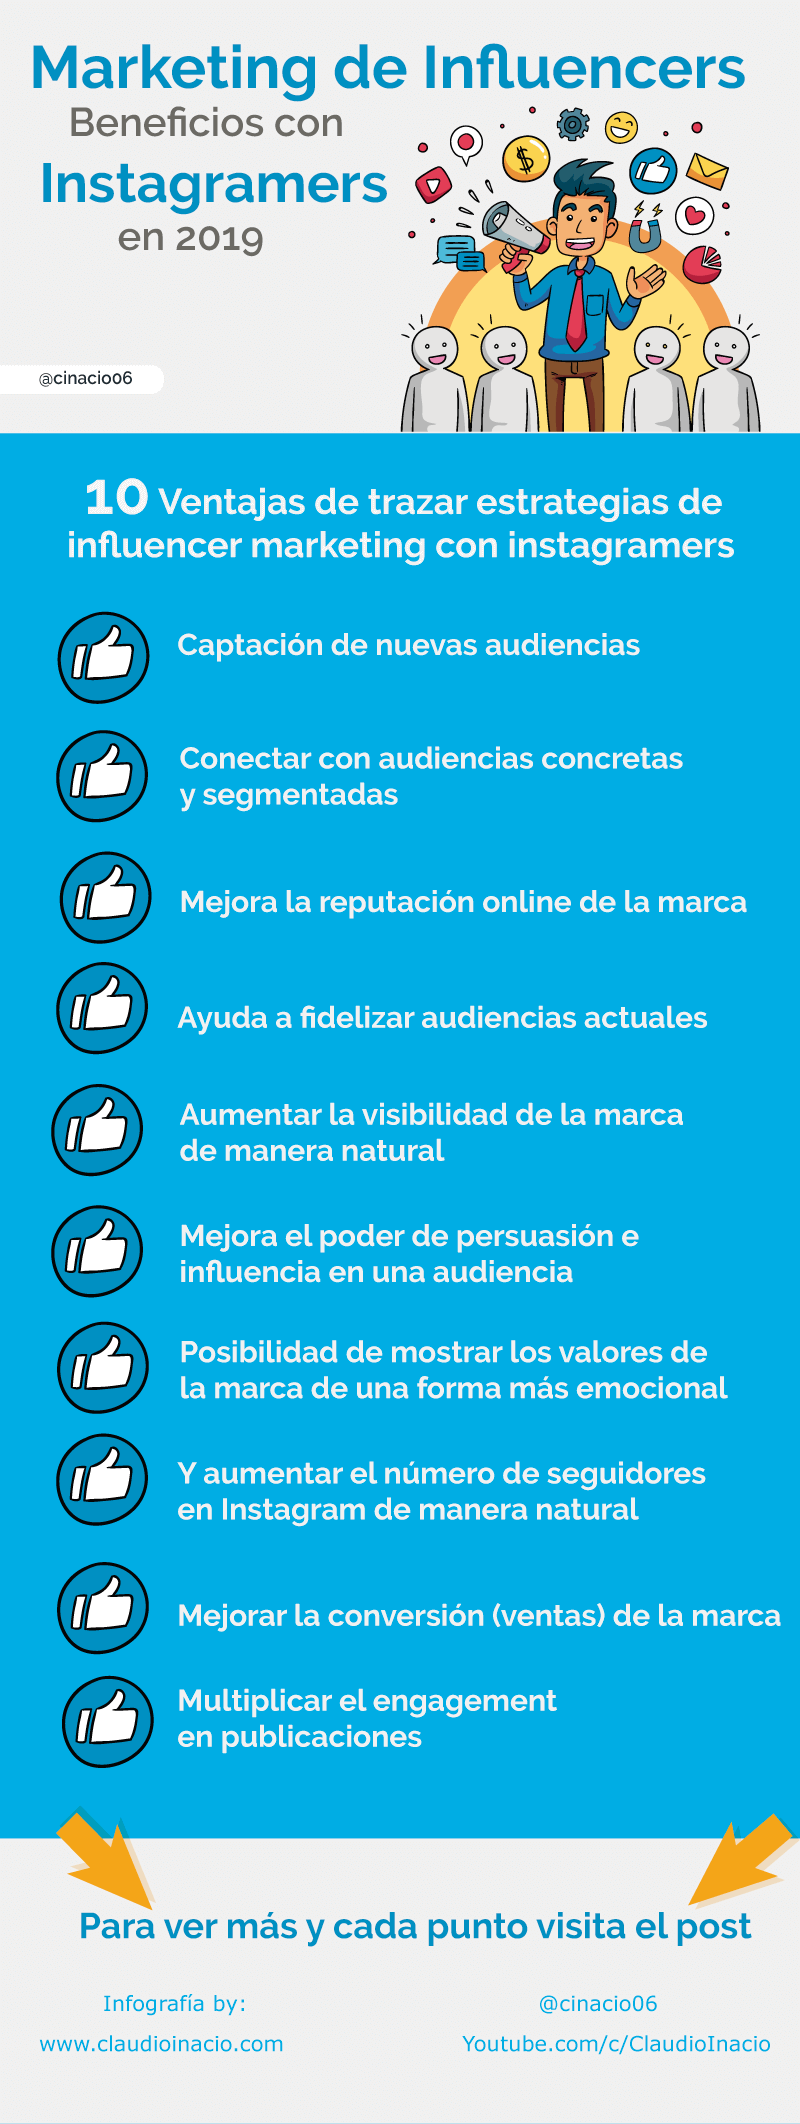 infografias con ventajas del marketing de influencers en instagram con estrategias de influencer marketing con instagramers